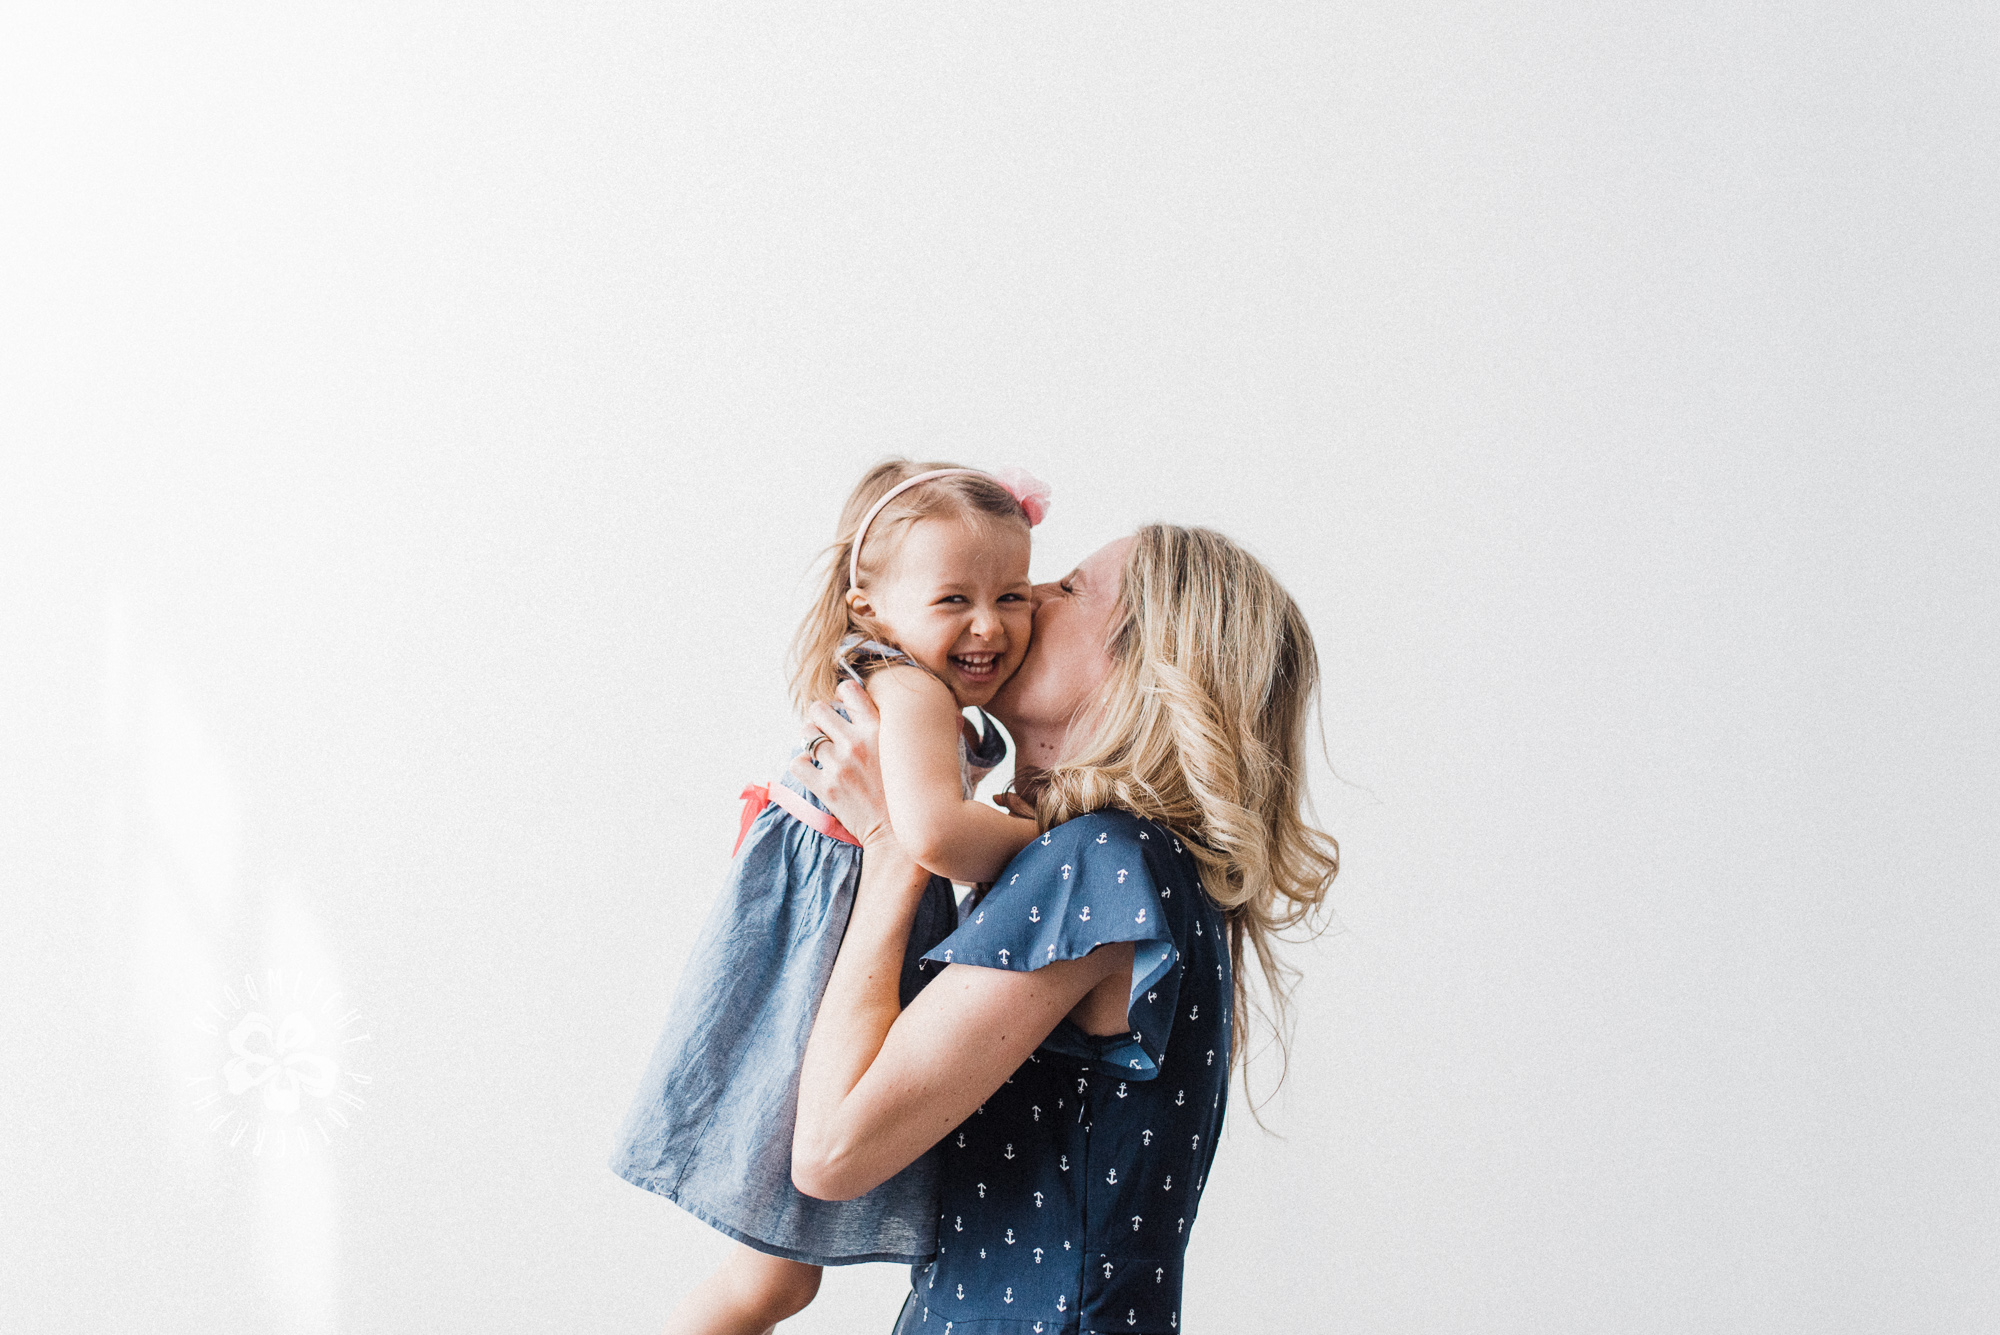 mother-baby-kiss-love-picture-Toronto-studio.JPG